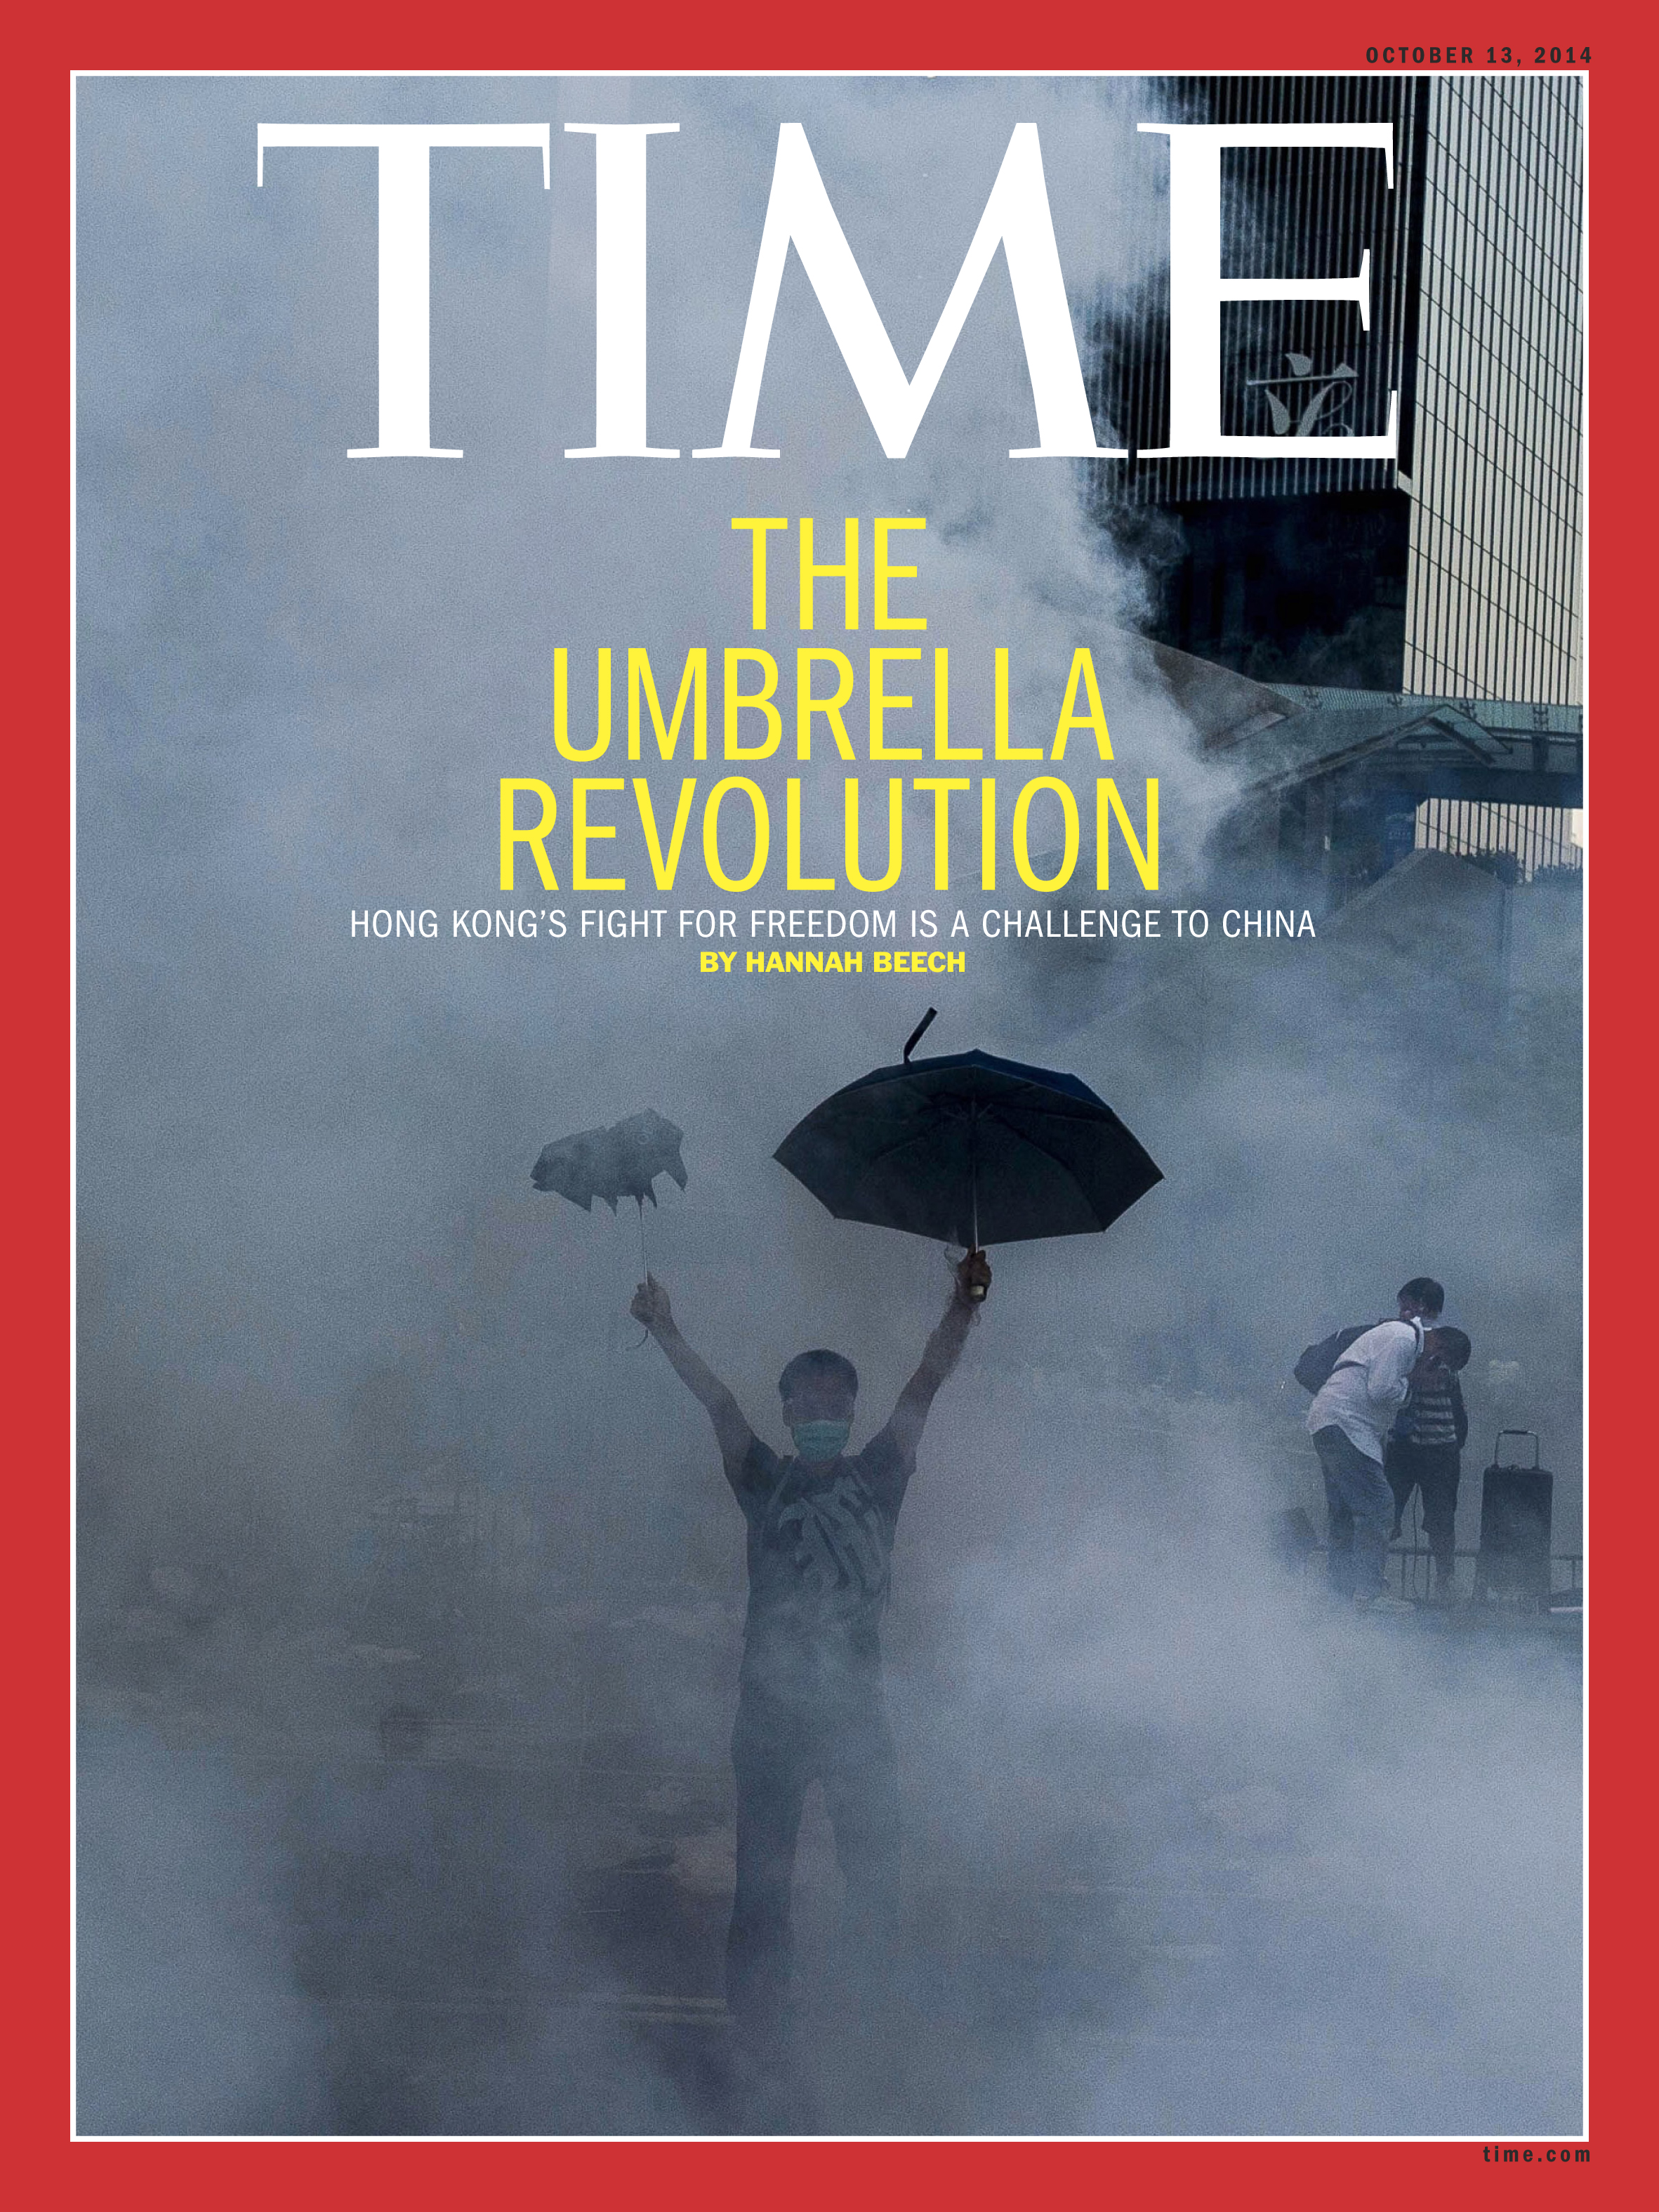 A protester stands defiantly while media tycoon Jimmy Lai, right, in a white shirt, receives assistance after being tear gassed in this image used on the Oct. 13, 2014, cover of TIME's international edition